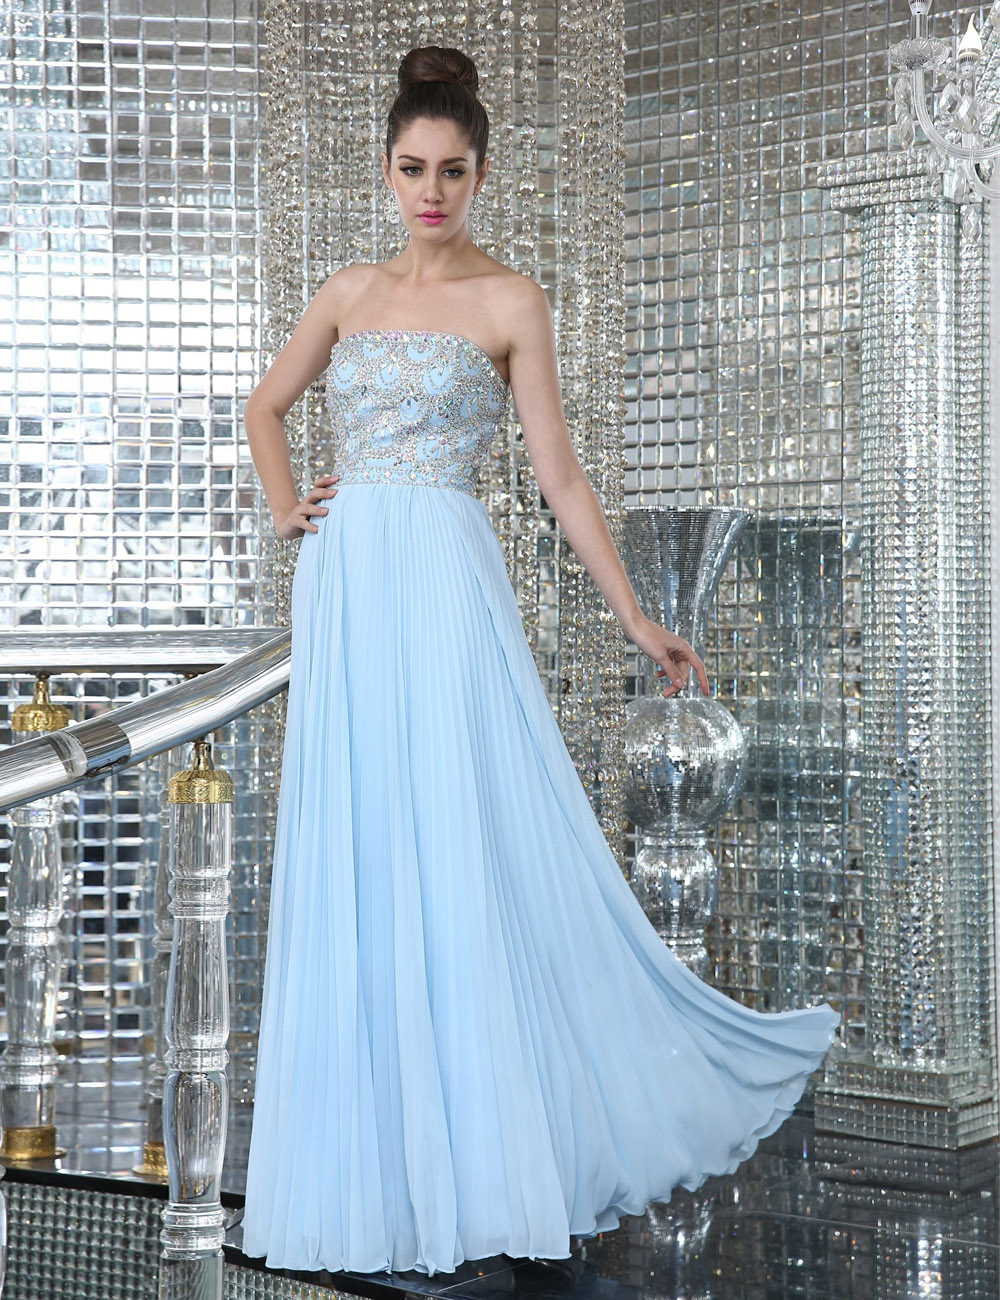 Princess Strapless Knee-length Taffeta Tulle Evening Dress